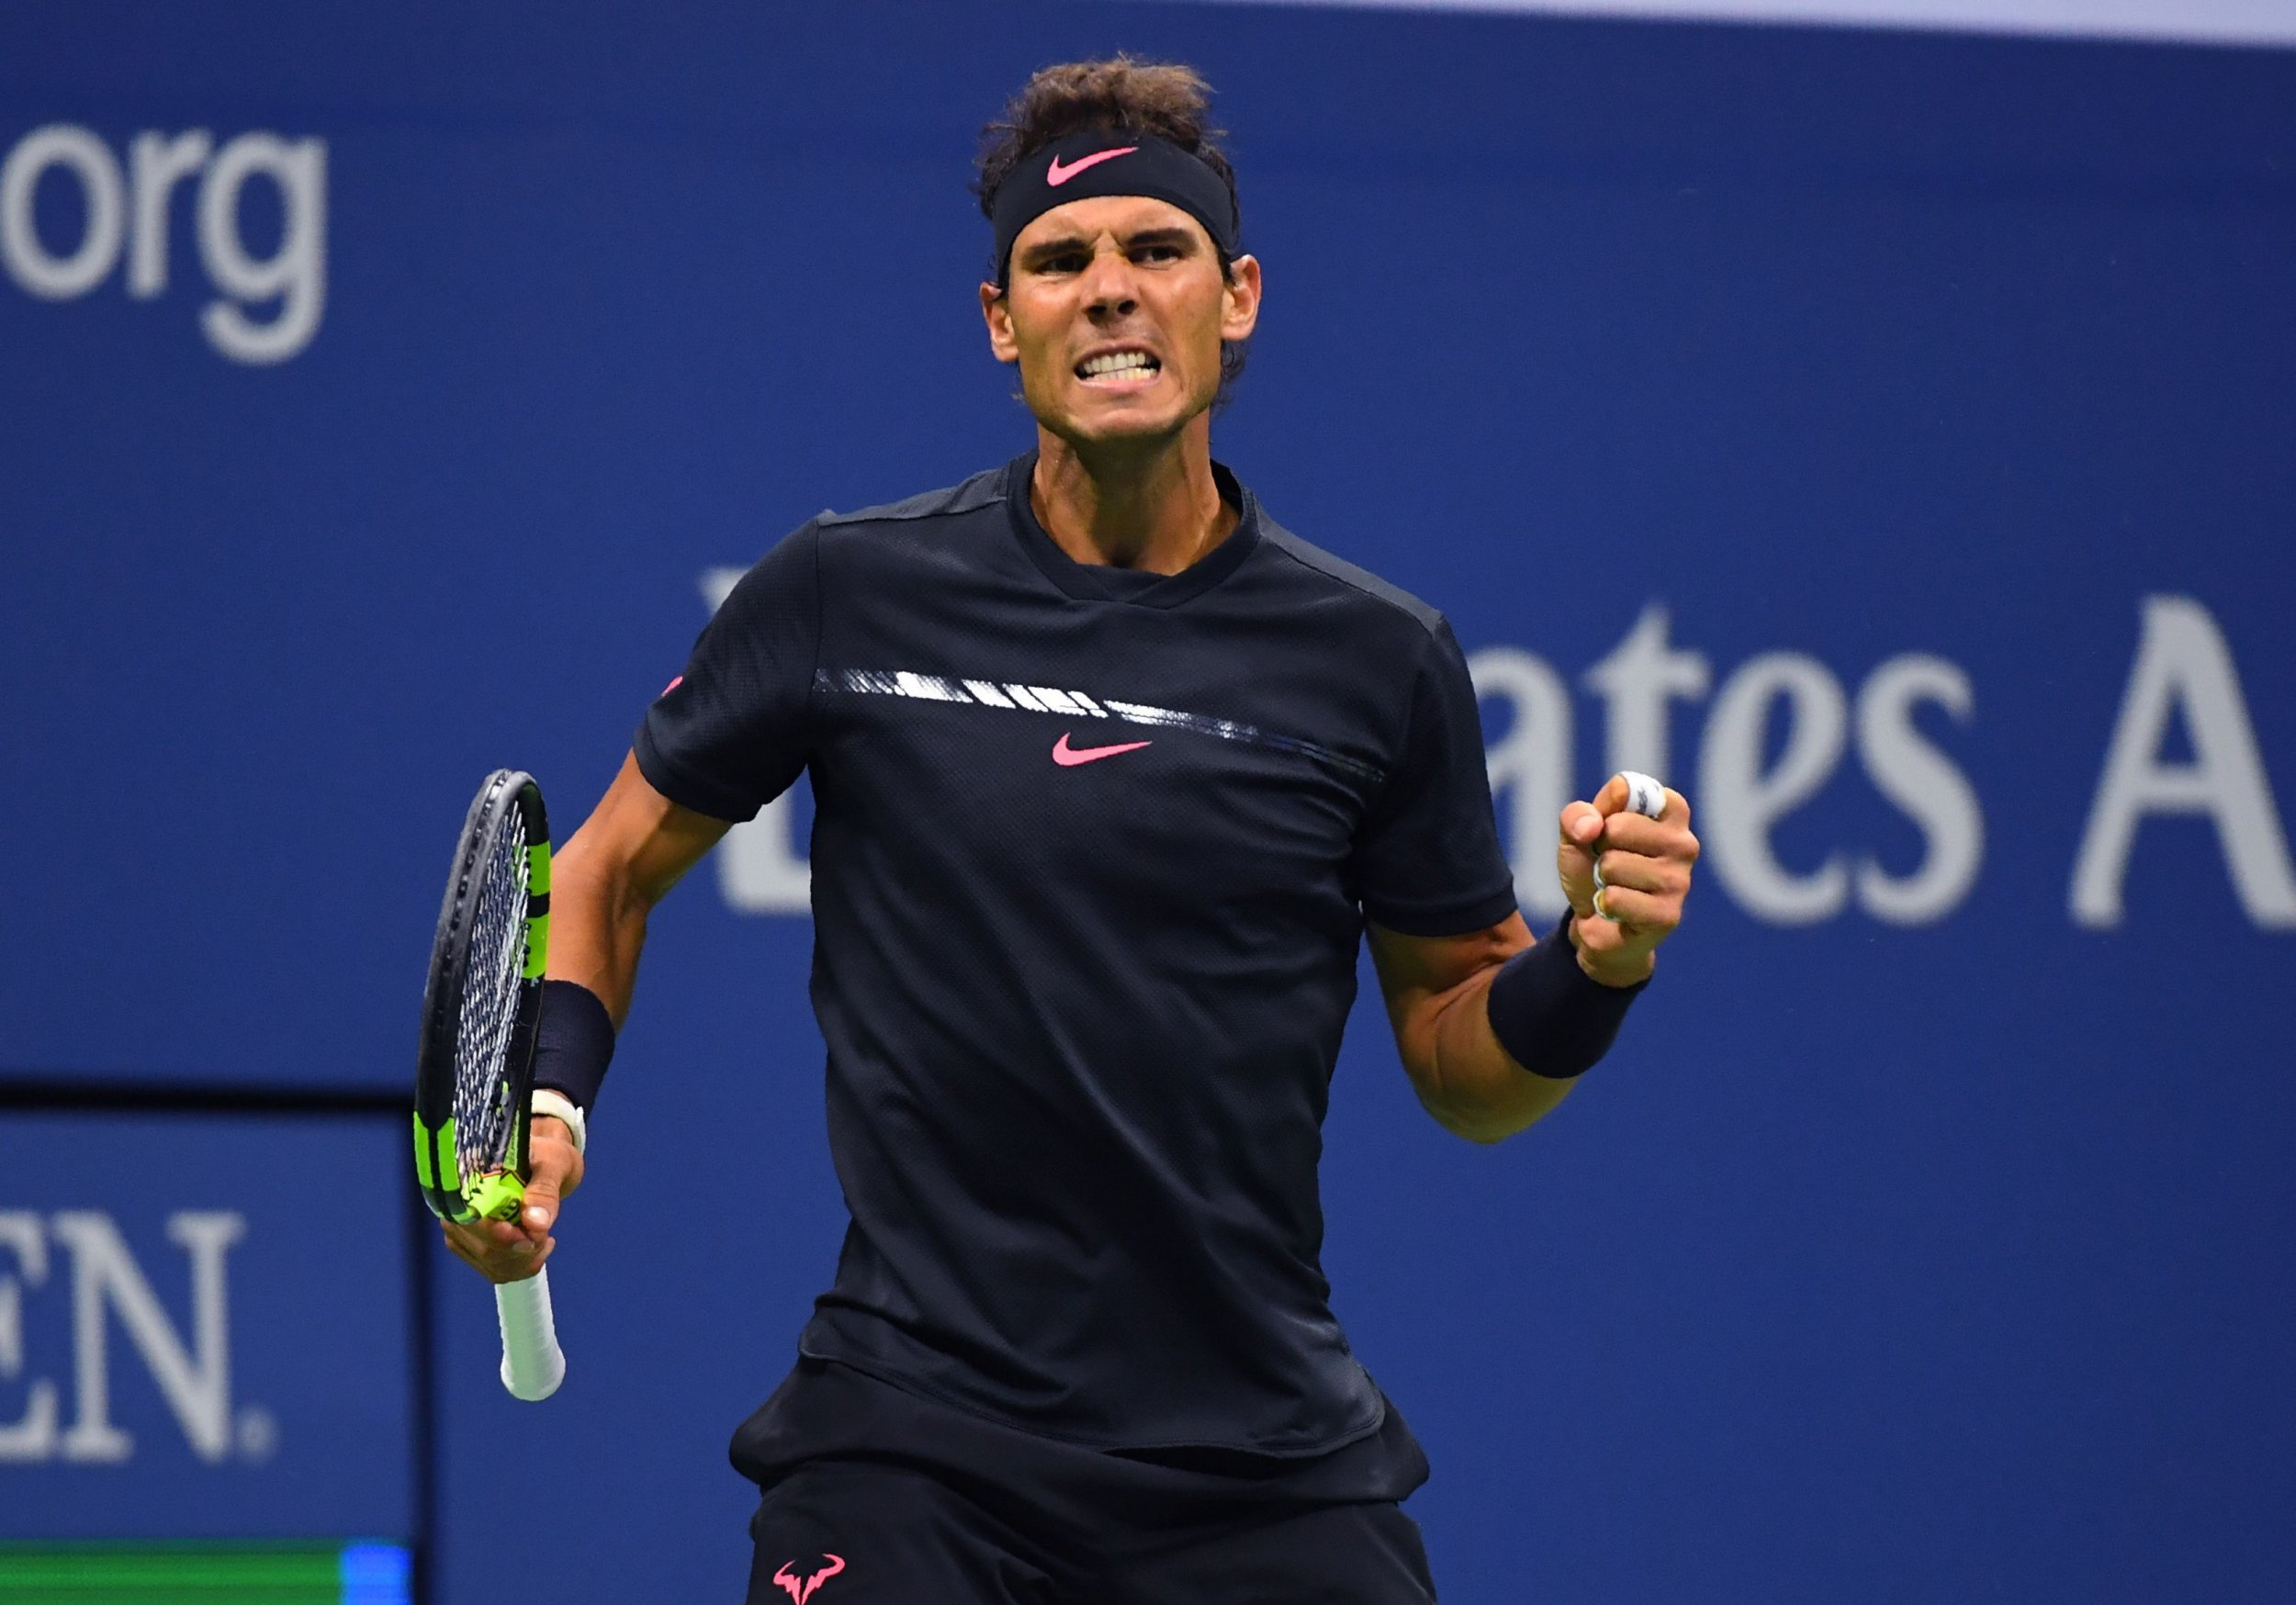 Relentless Rafael Nadal to challenge for Grand Slam No. 16 against Kevin Anderson after crushing Juan Martin del Potro at the US Open